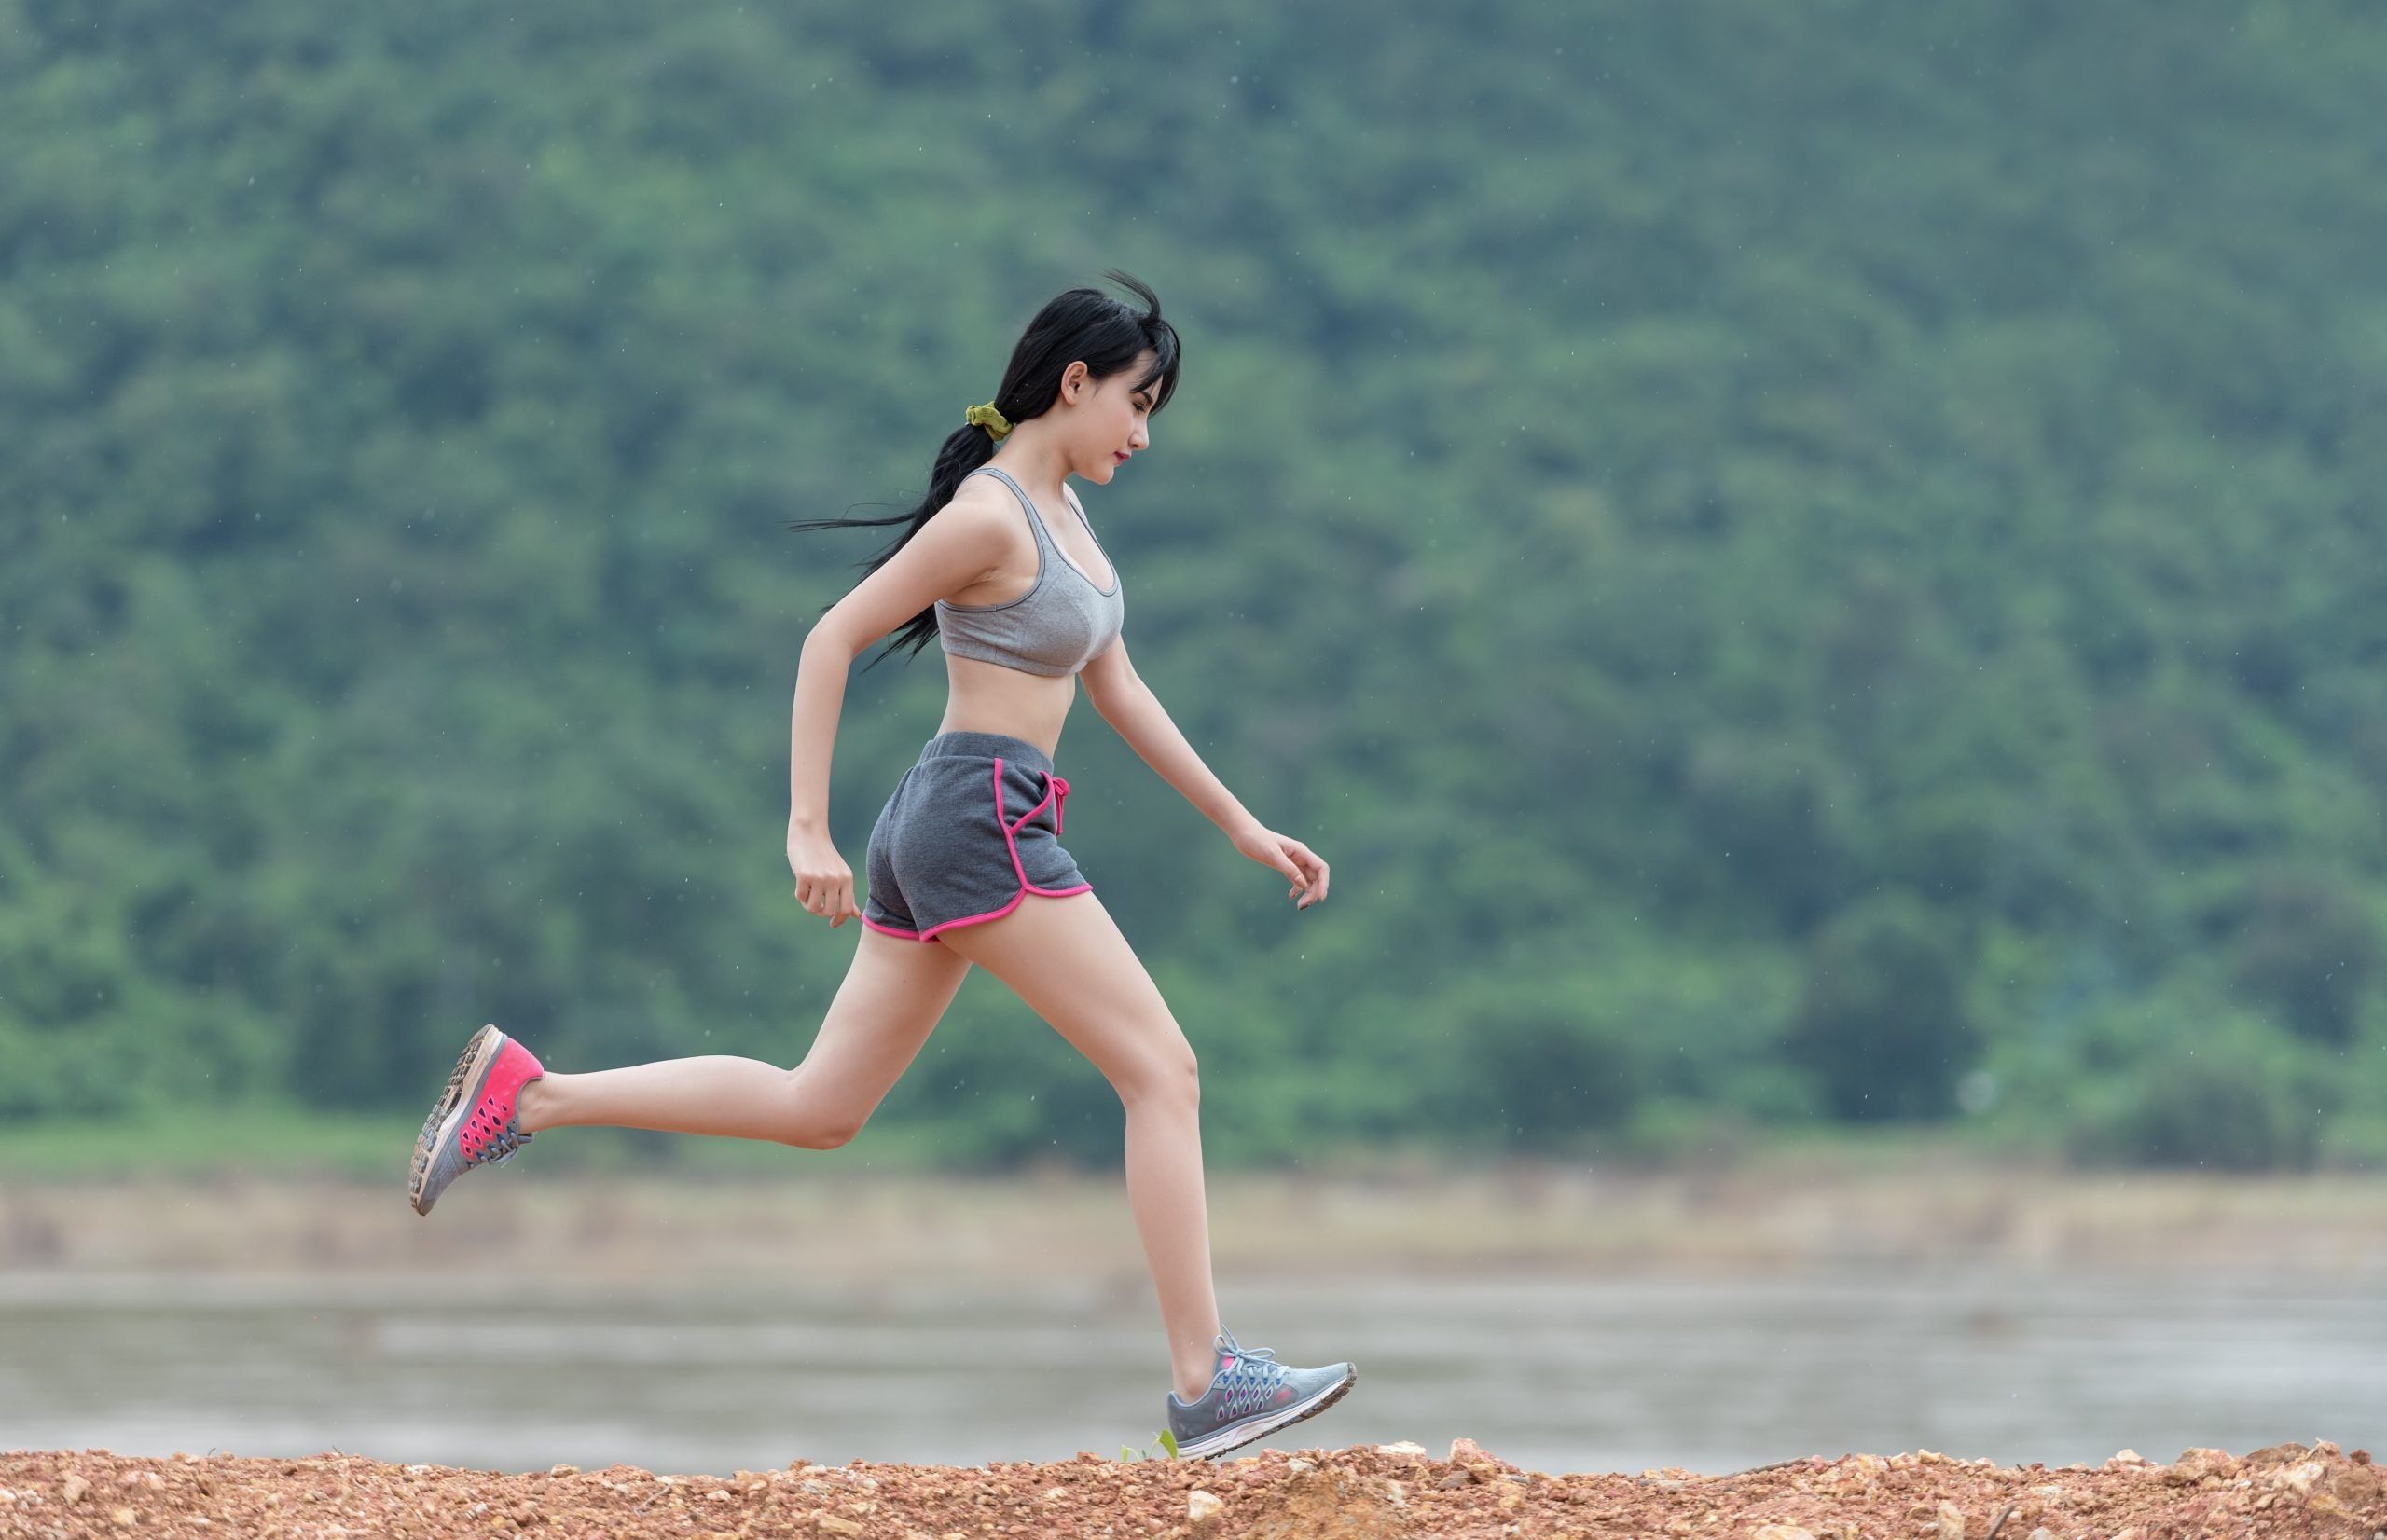 woman, running, run